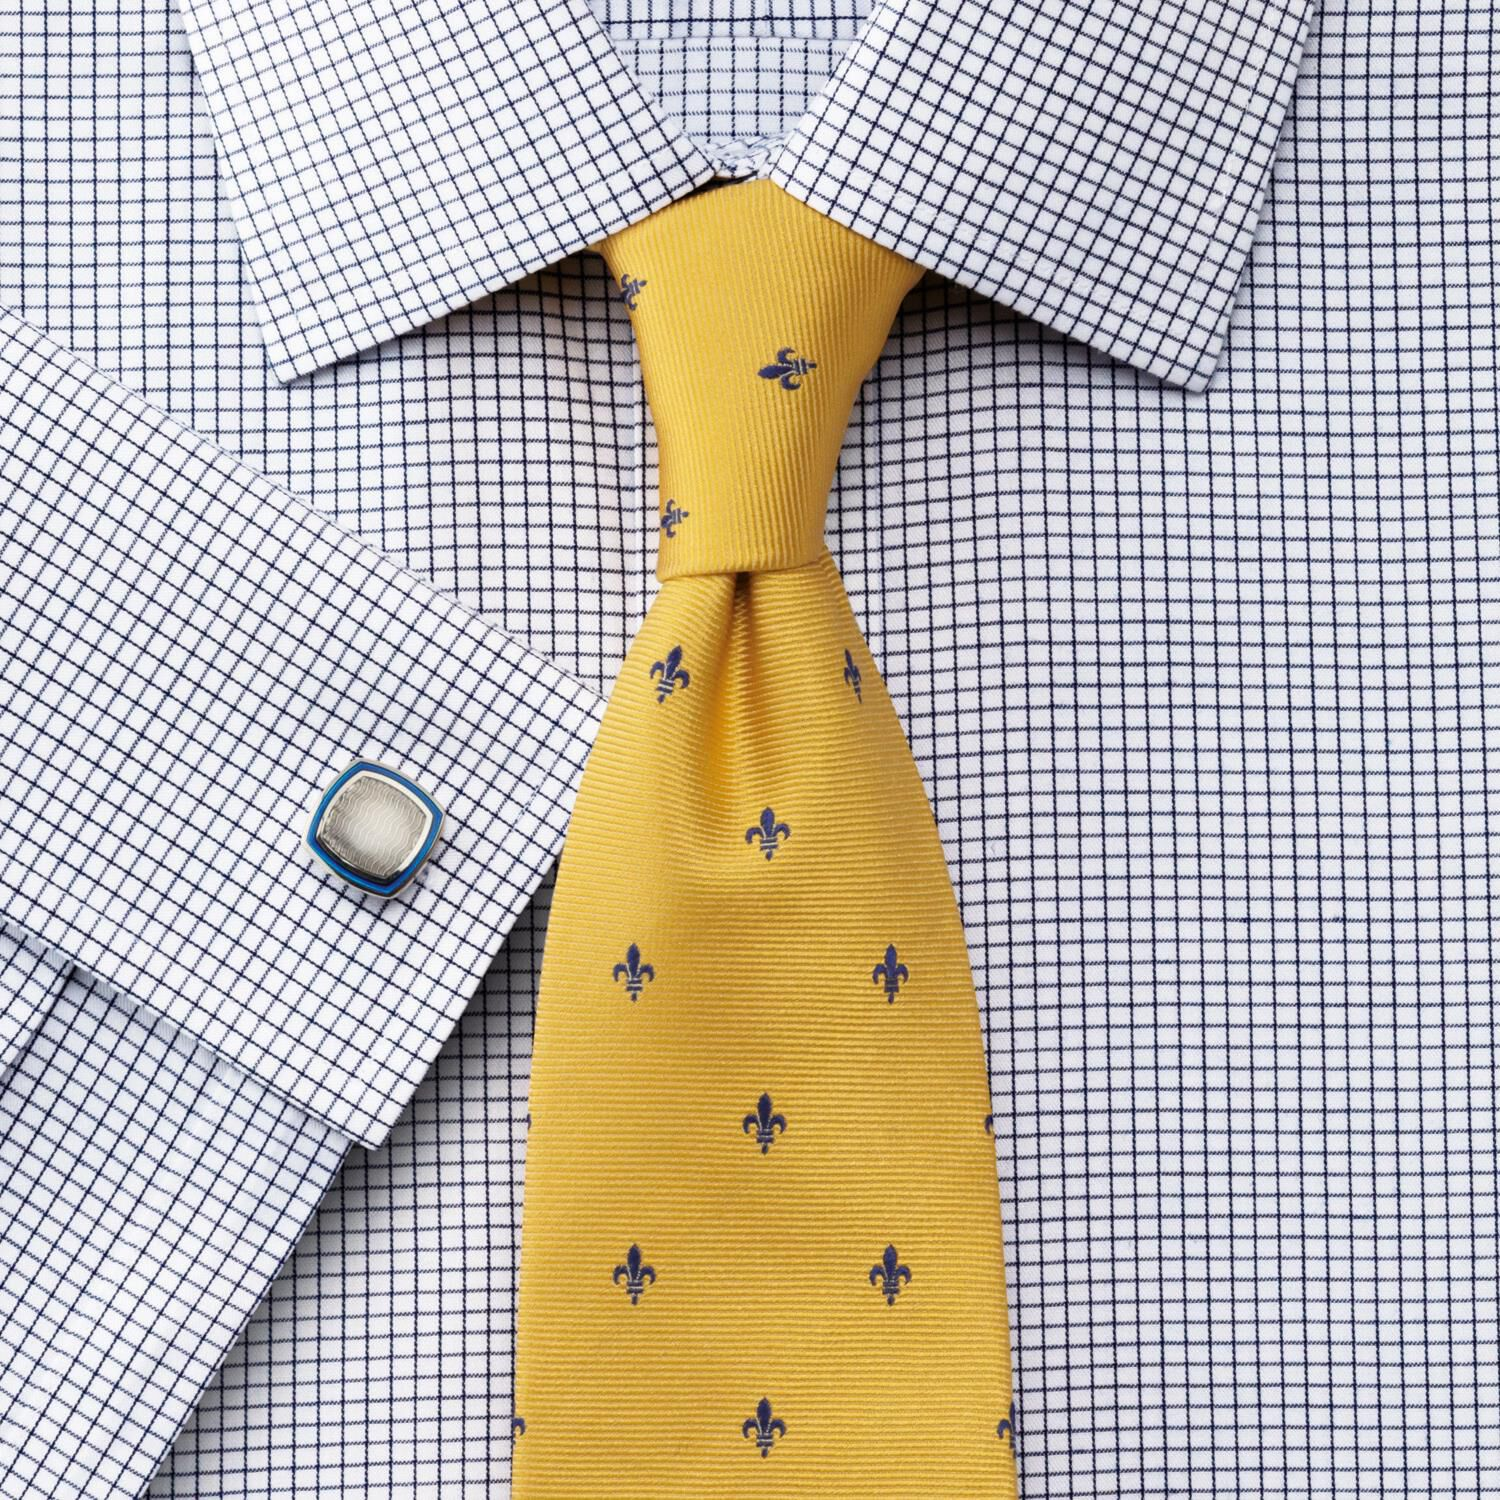 Slim Fit Non-Iron Windsor Check Navy Cotton Formal Shirt Double Cuff Size 17/37 by Charles Tyrwhitt